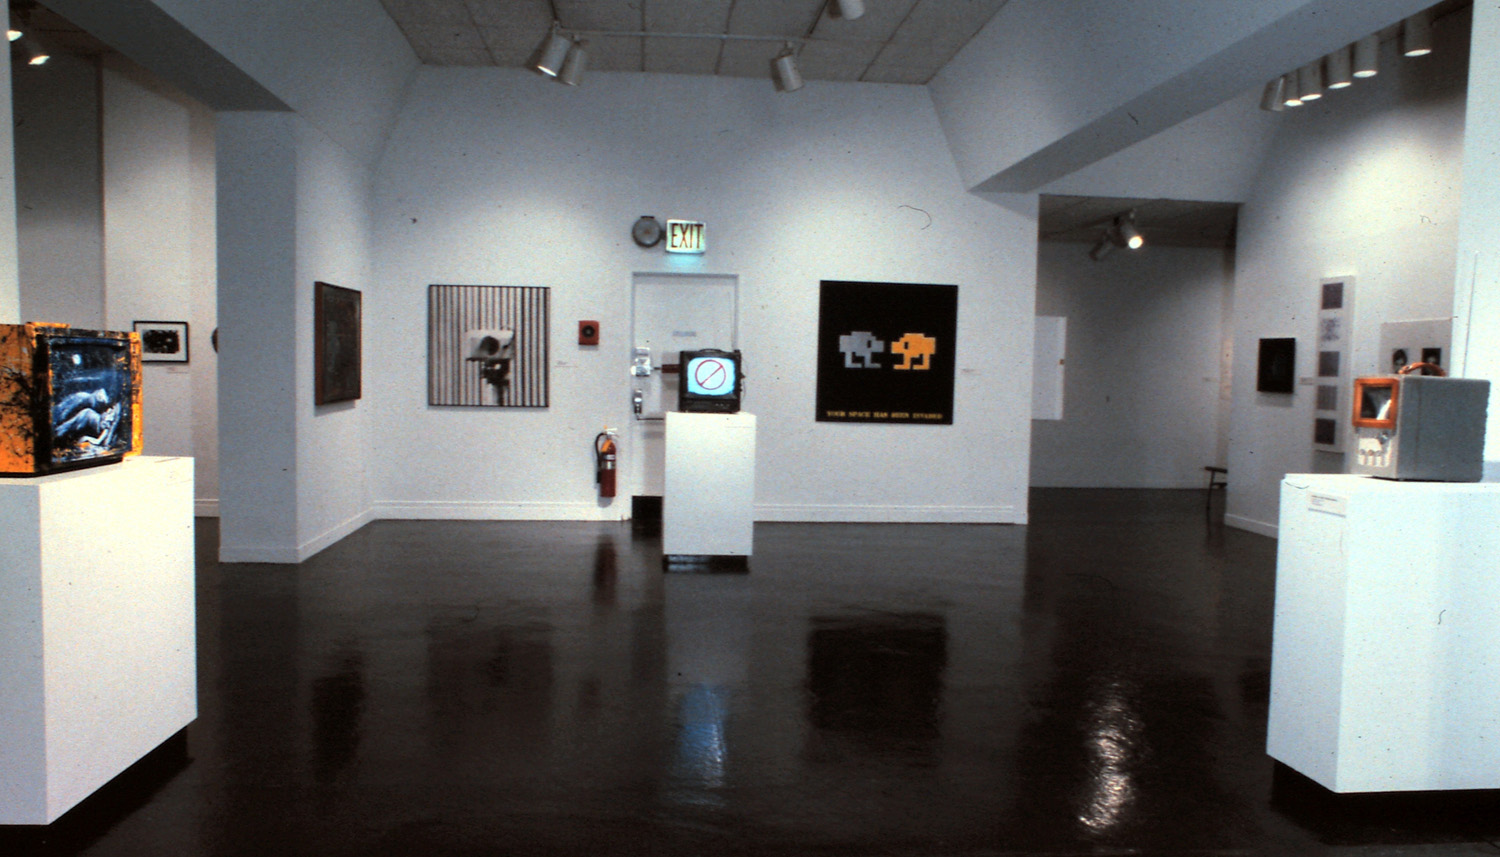 Left to right: Keiko Bonk, Moonlight Love; Lewis Stein, Surveillance; John Fekner, Tarred T.V.; John Fekner and Don Leicht, Your Space Is Being Invaded; Edward and Nancy Reddin Kienholz, The Block Head.